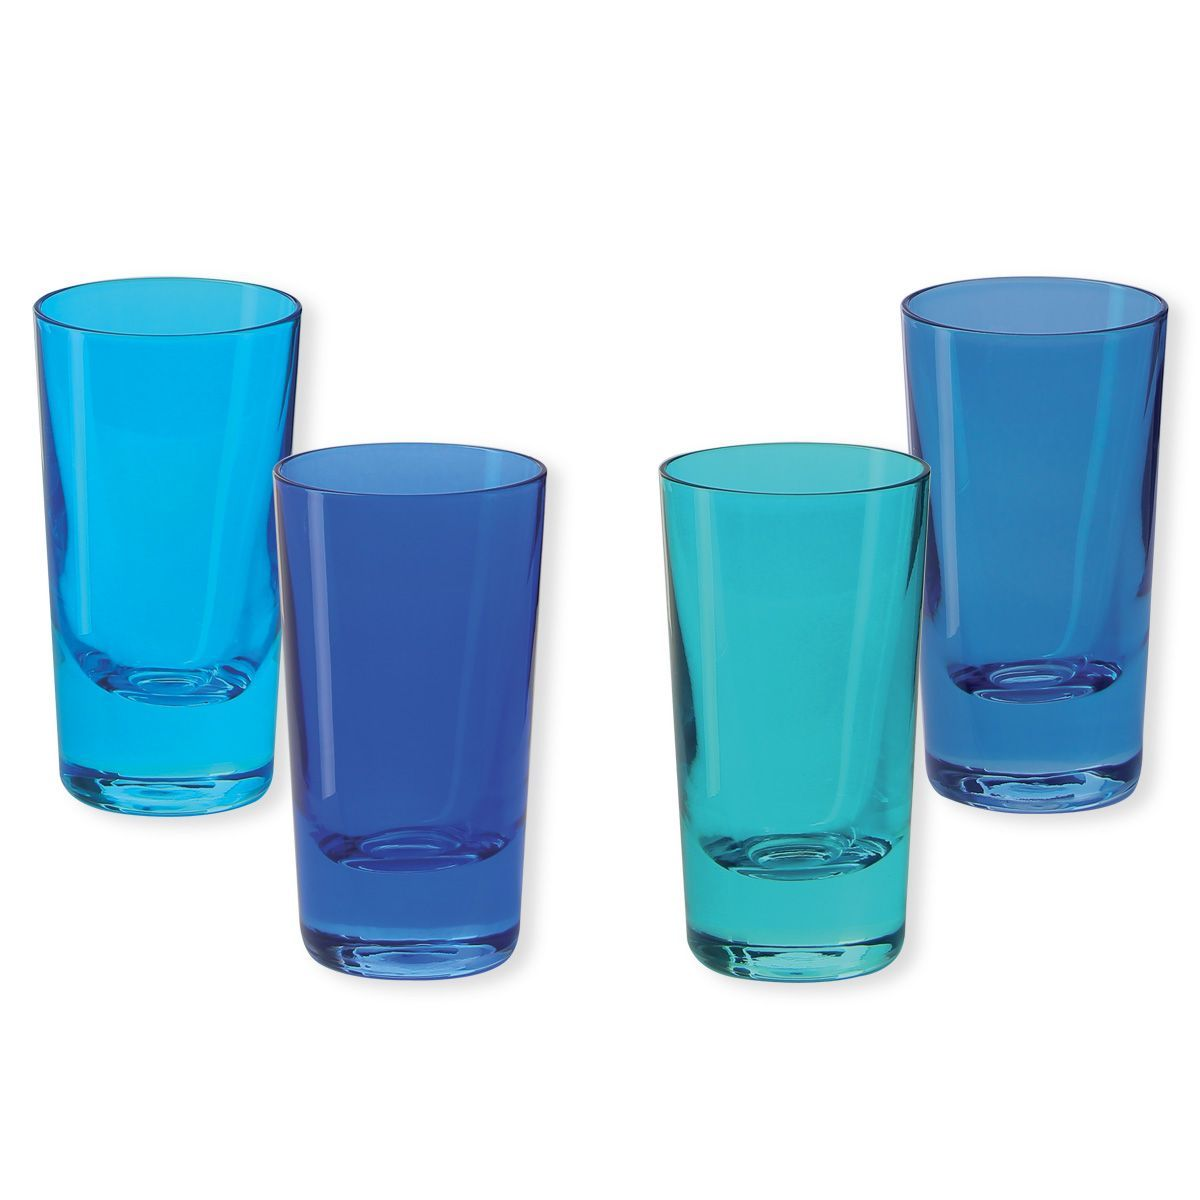 verre shooter kador bleu 6cl set de 4 bruno evrard cr ation. Black Bedroom Furniture Sets. Home Design Ideas